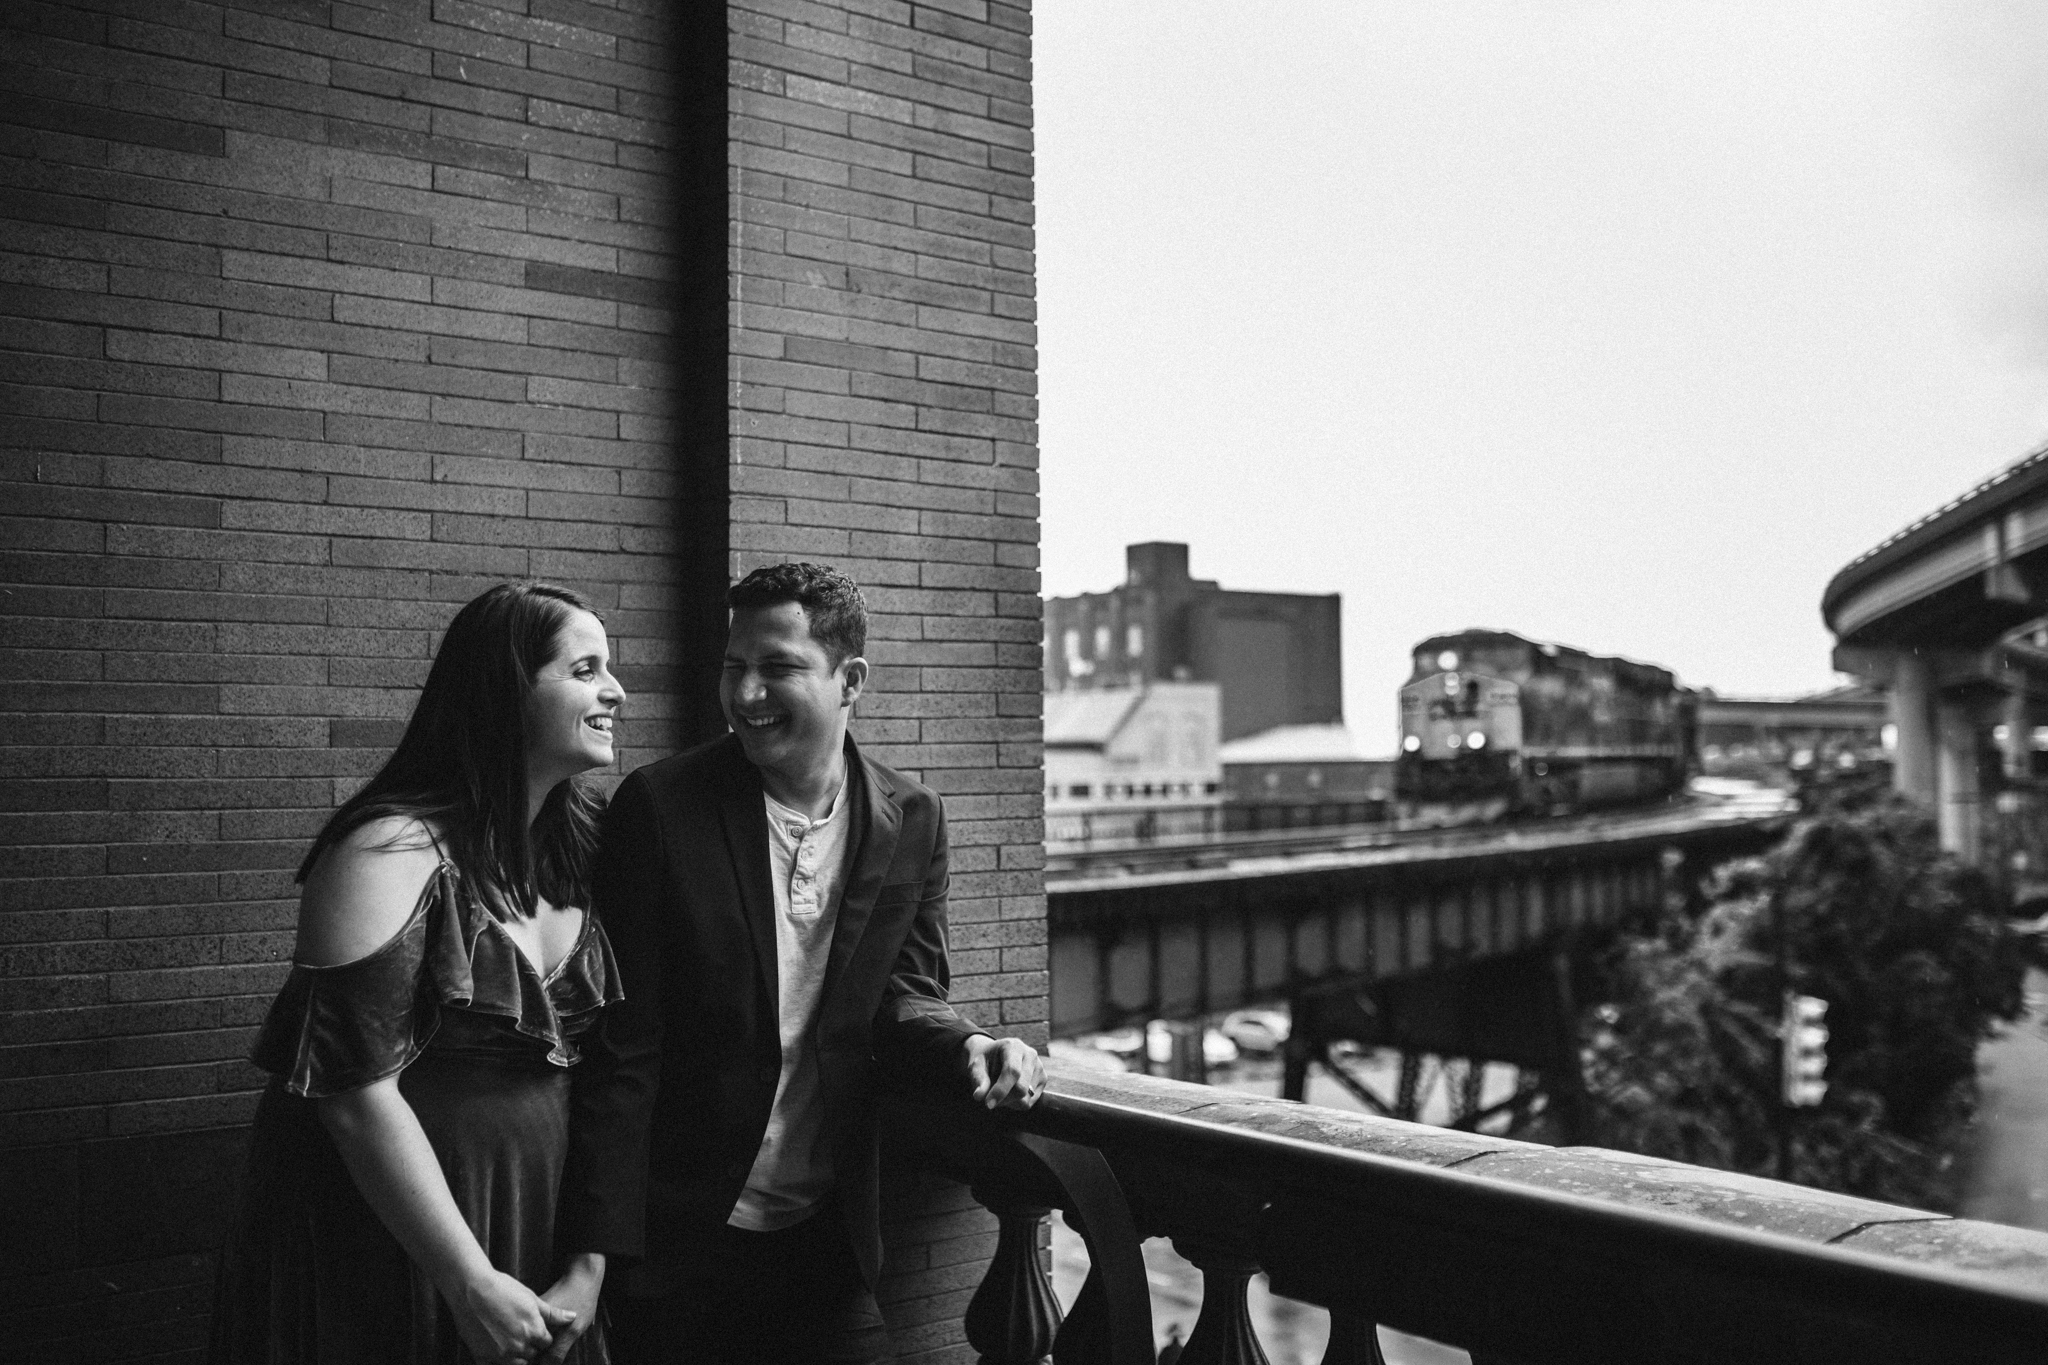 rachel_alex_richmond_engagement_session_mainstreetstation_rebeccaburtphotography-33.jpg